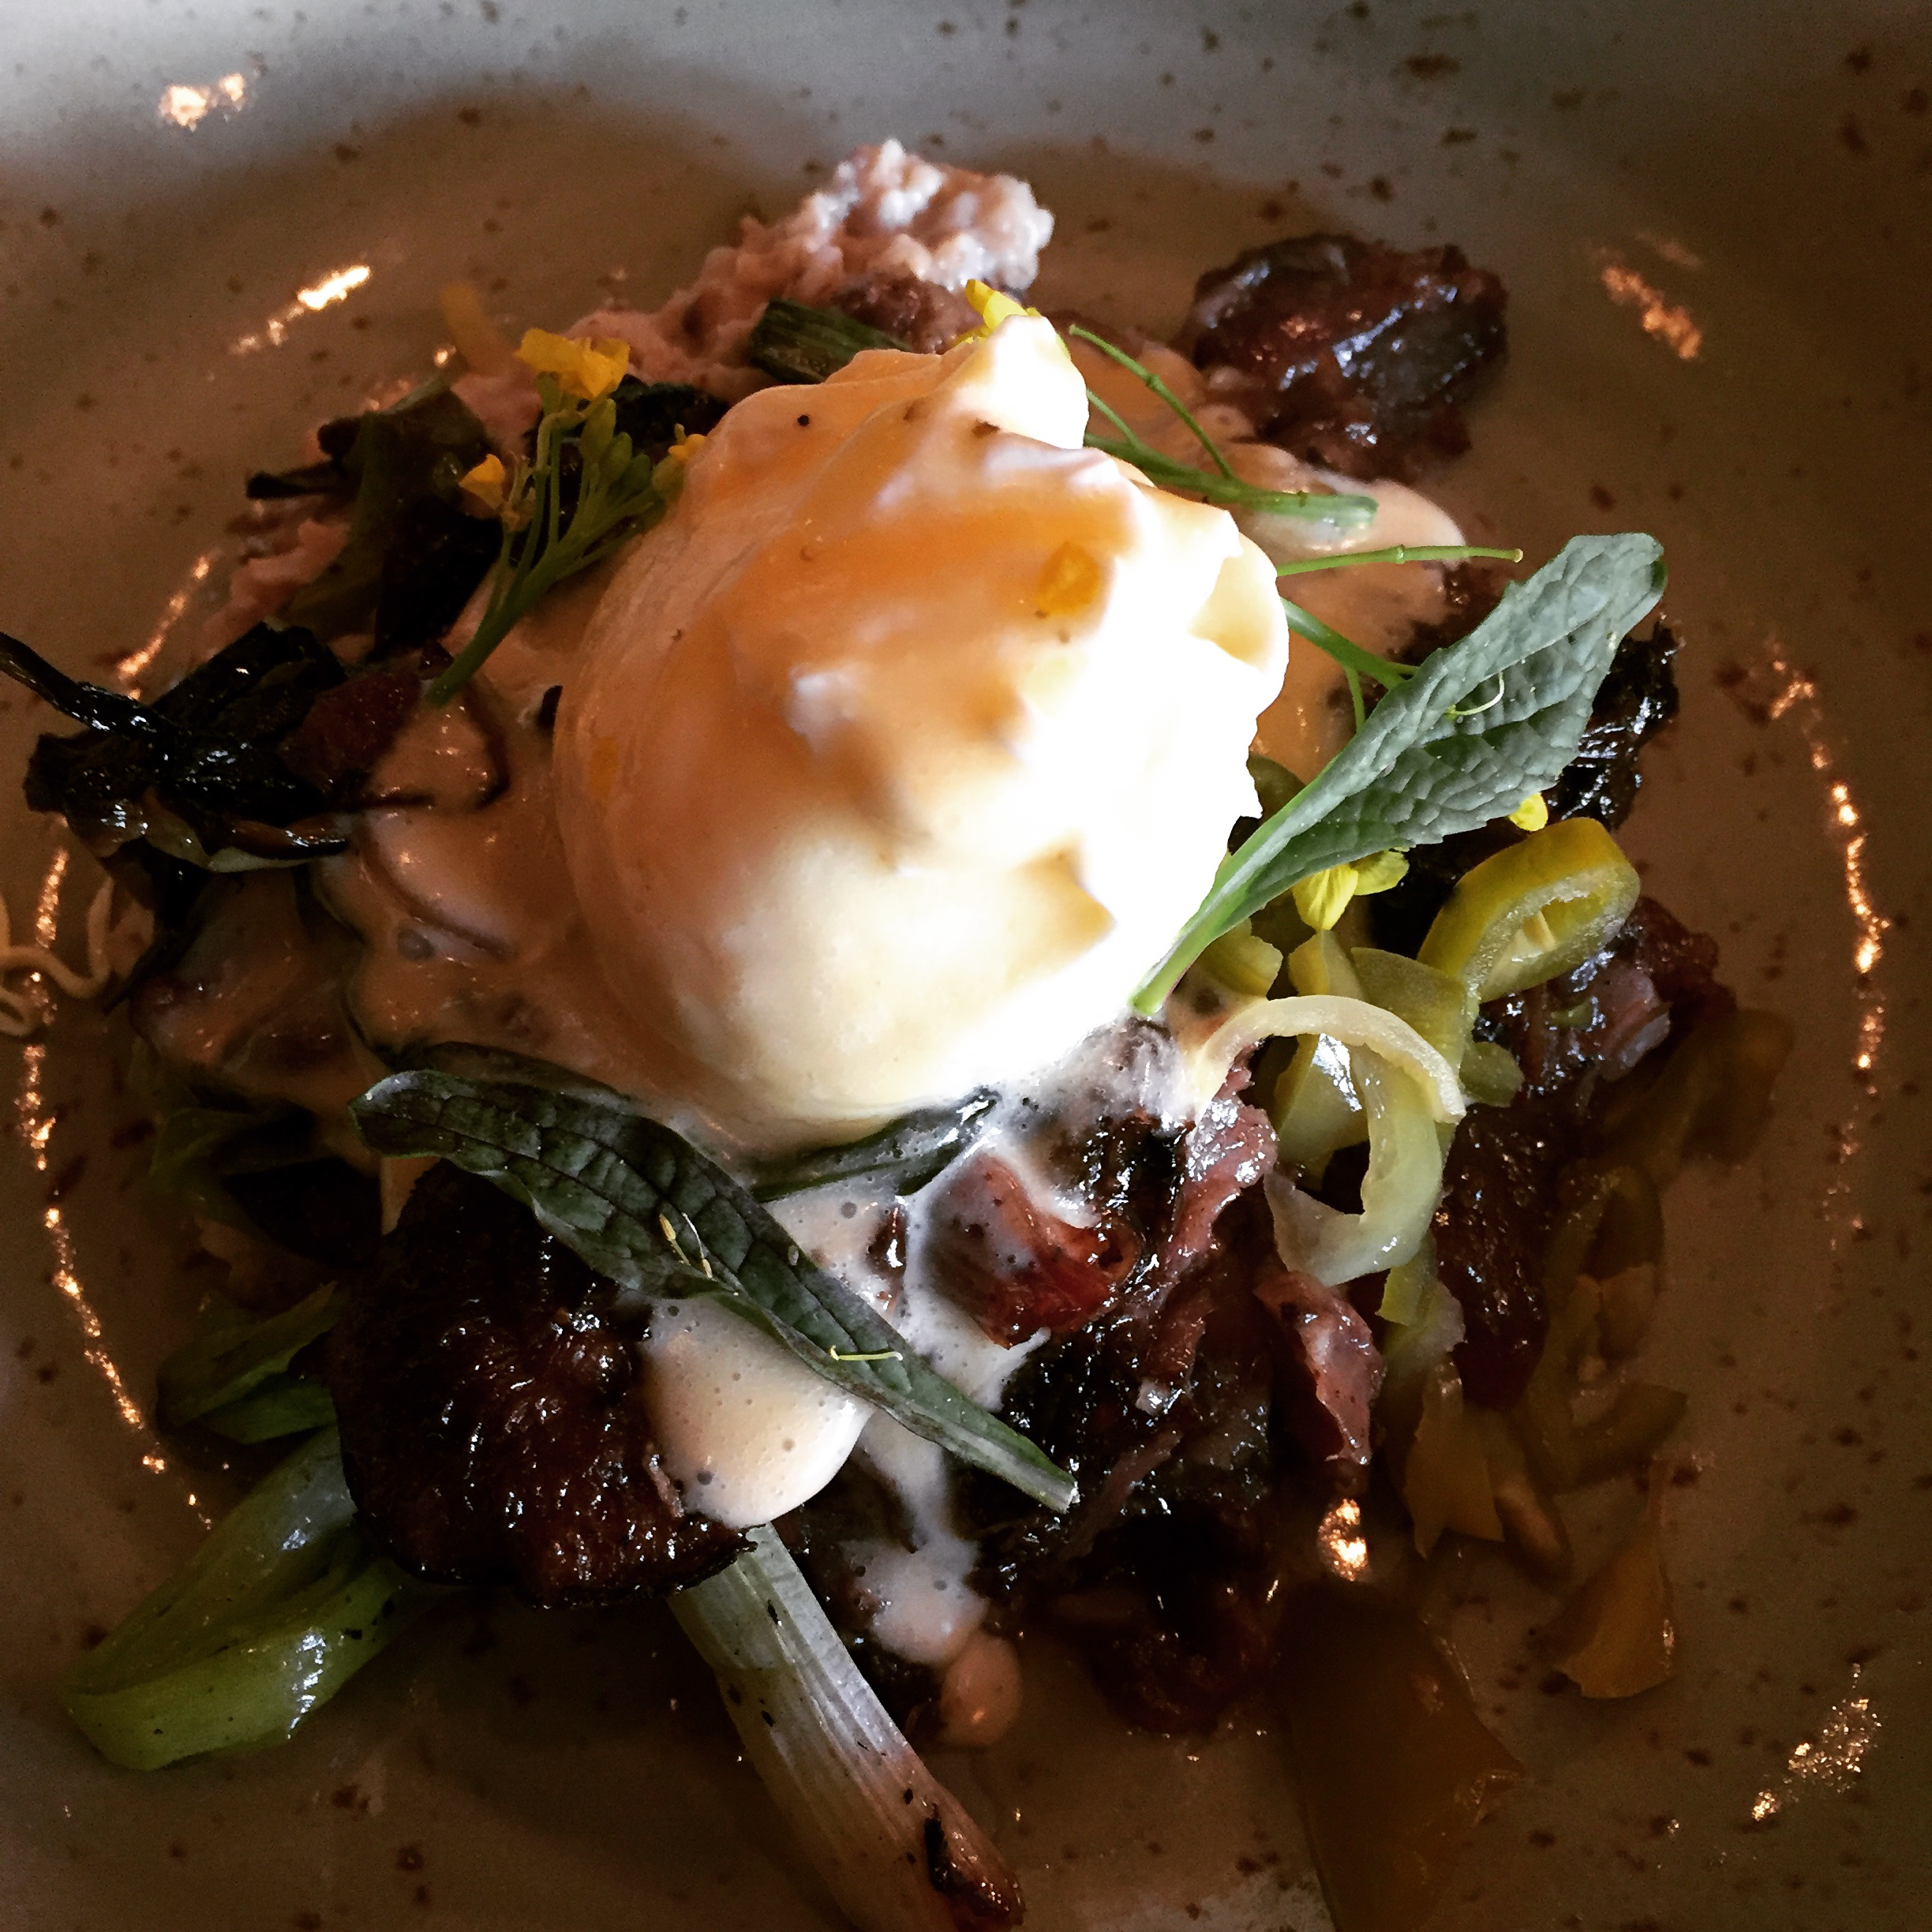 Beef cheek with oats and poached egg